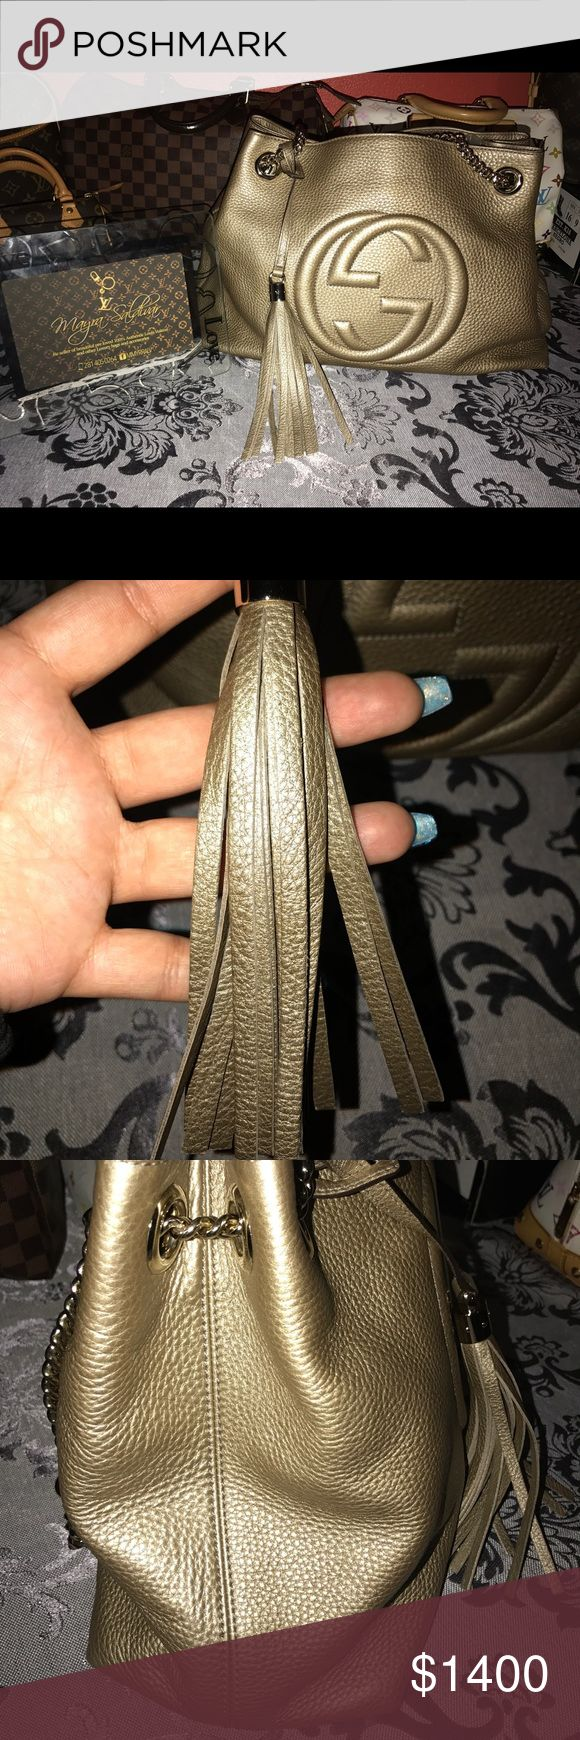 Gucci Hobo Shoulder Bag Gucci Soho Style very nice, this bag is in perfect condition without any use, comes with a dust bag and care book. The iconic 'Soho' style, Gucci's bag is detailed with the brand's signature interlocking 'GG' logo and chunky (detachable) tassel charm. It's made from supple textured-leather and has a beige canvas-lined. Gleaming gold Cross-body chain, strap is the perfect length for wearing on one shoulder, and hottest color of the season for layering whites.  Medium…